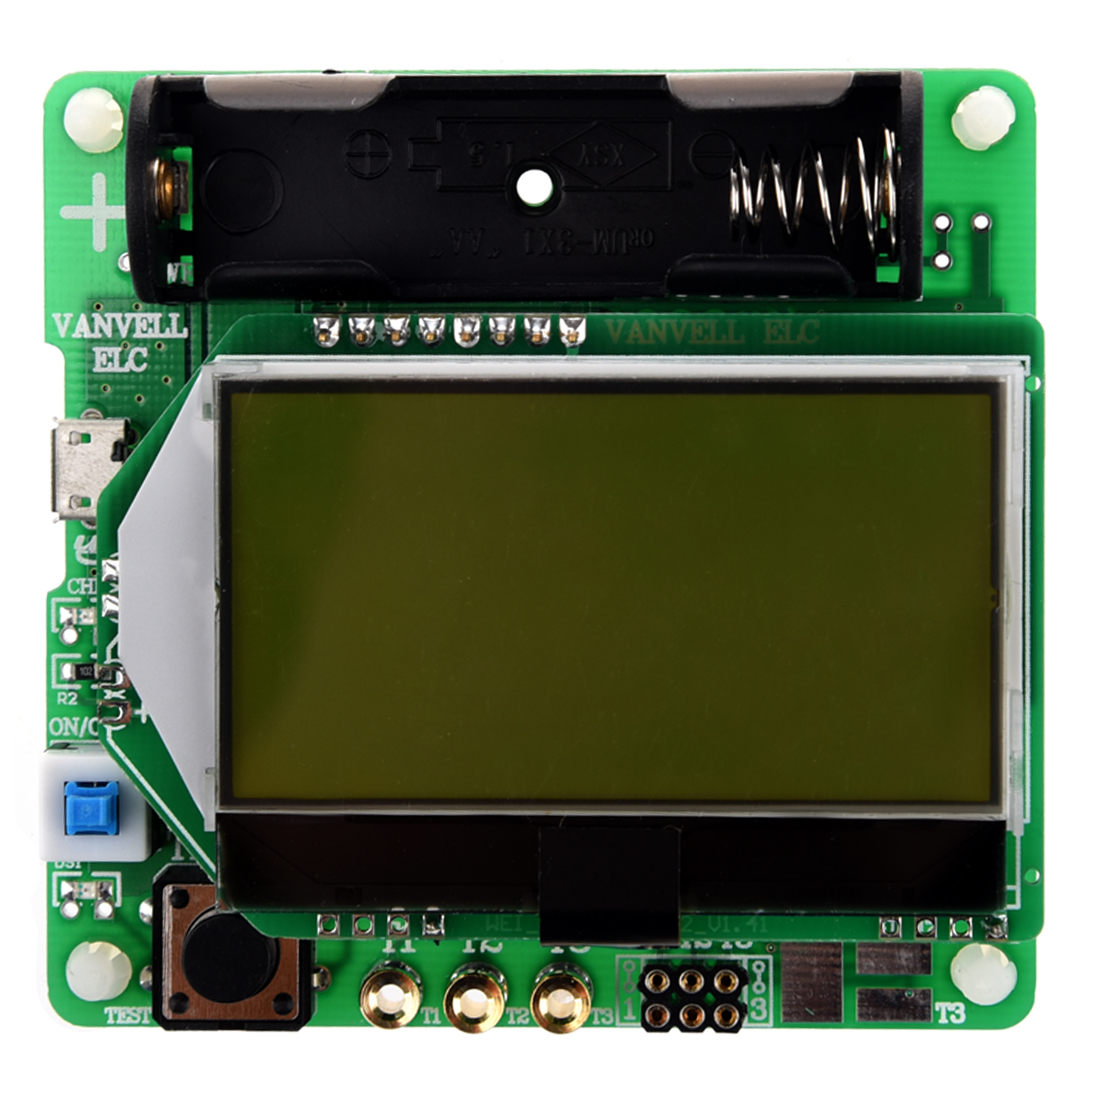 WSFS Hot Sale M328 multifunctional tester capacitance diode paid transistors inductor ESR LCR meter with USB interface Green  цены